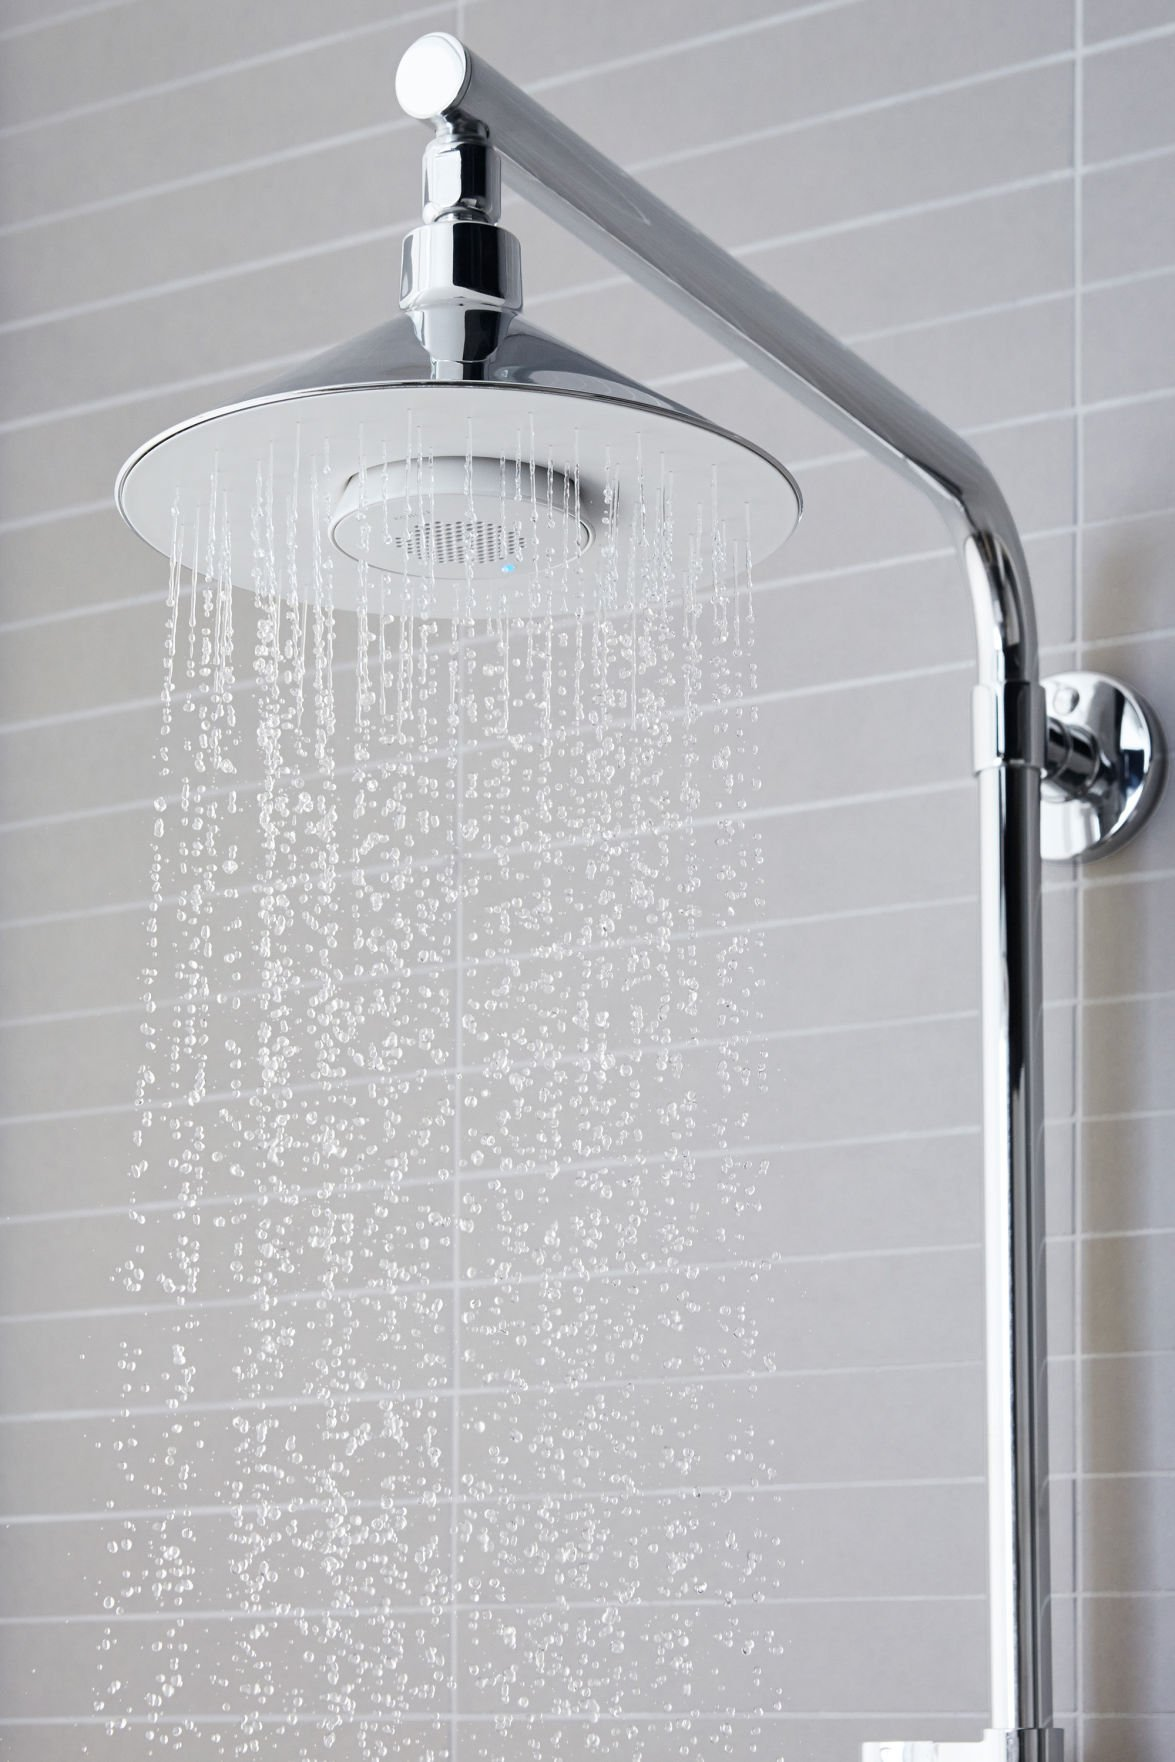 Rain shower heads awash with new features | House & Home ...